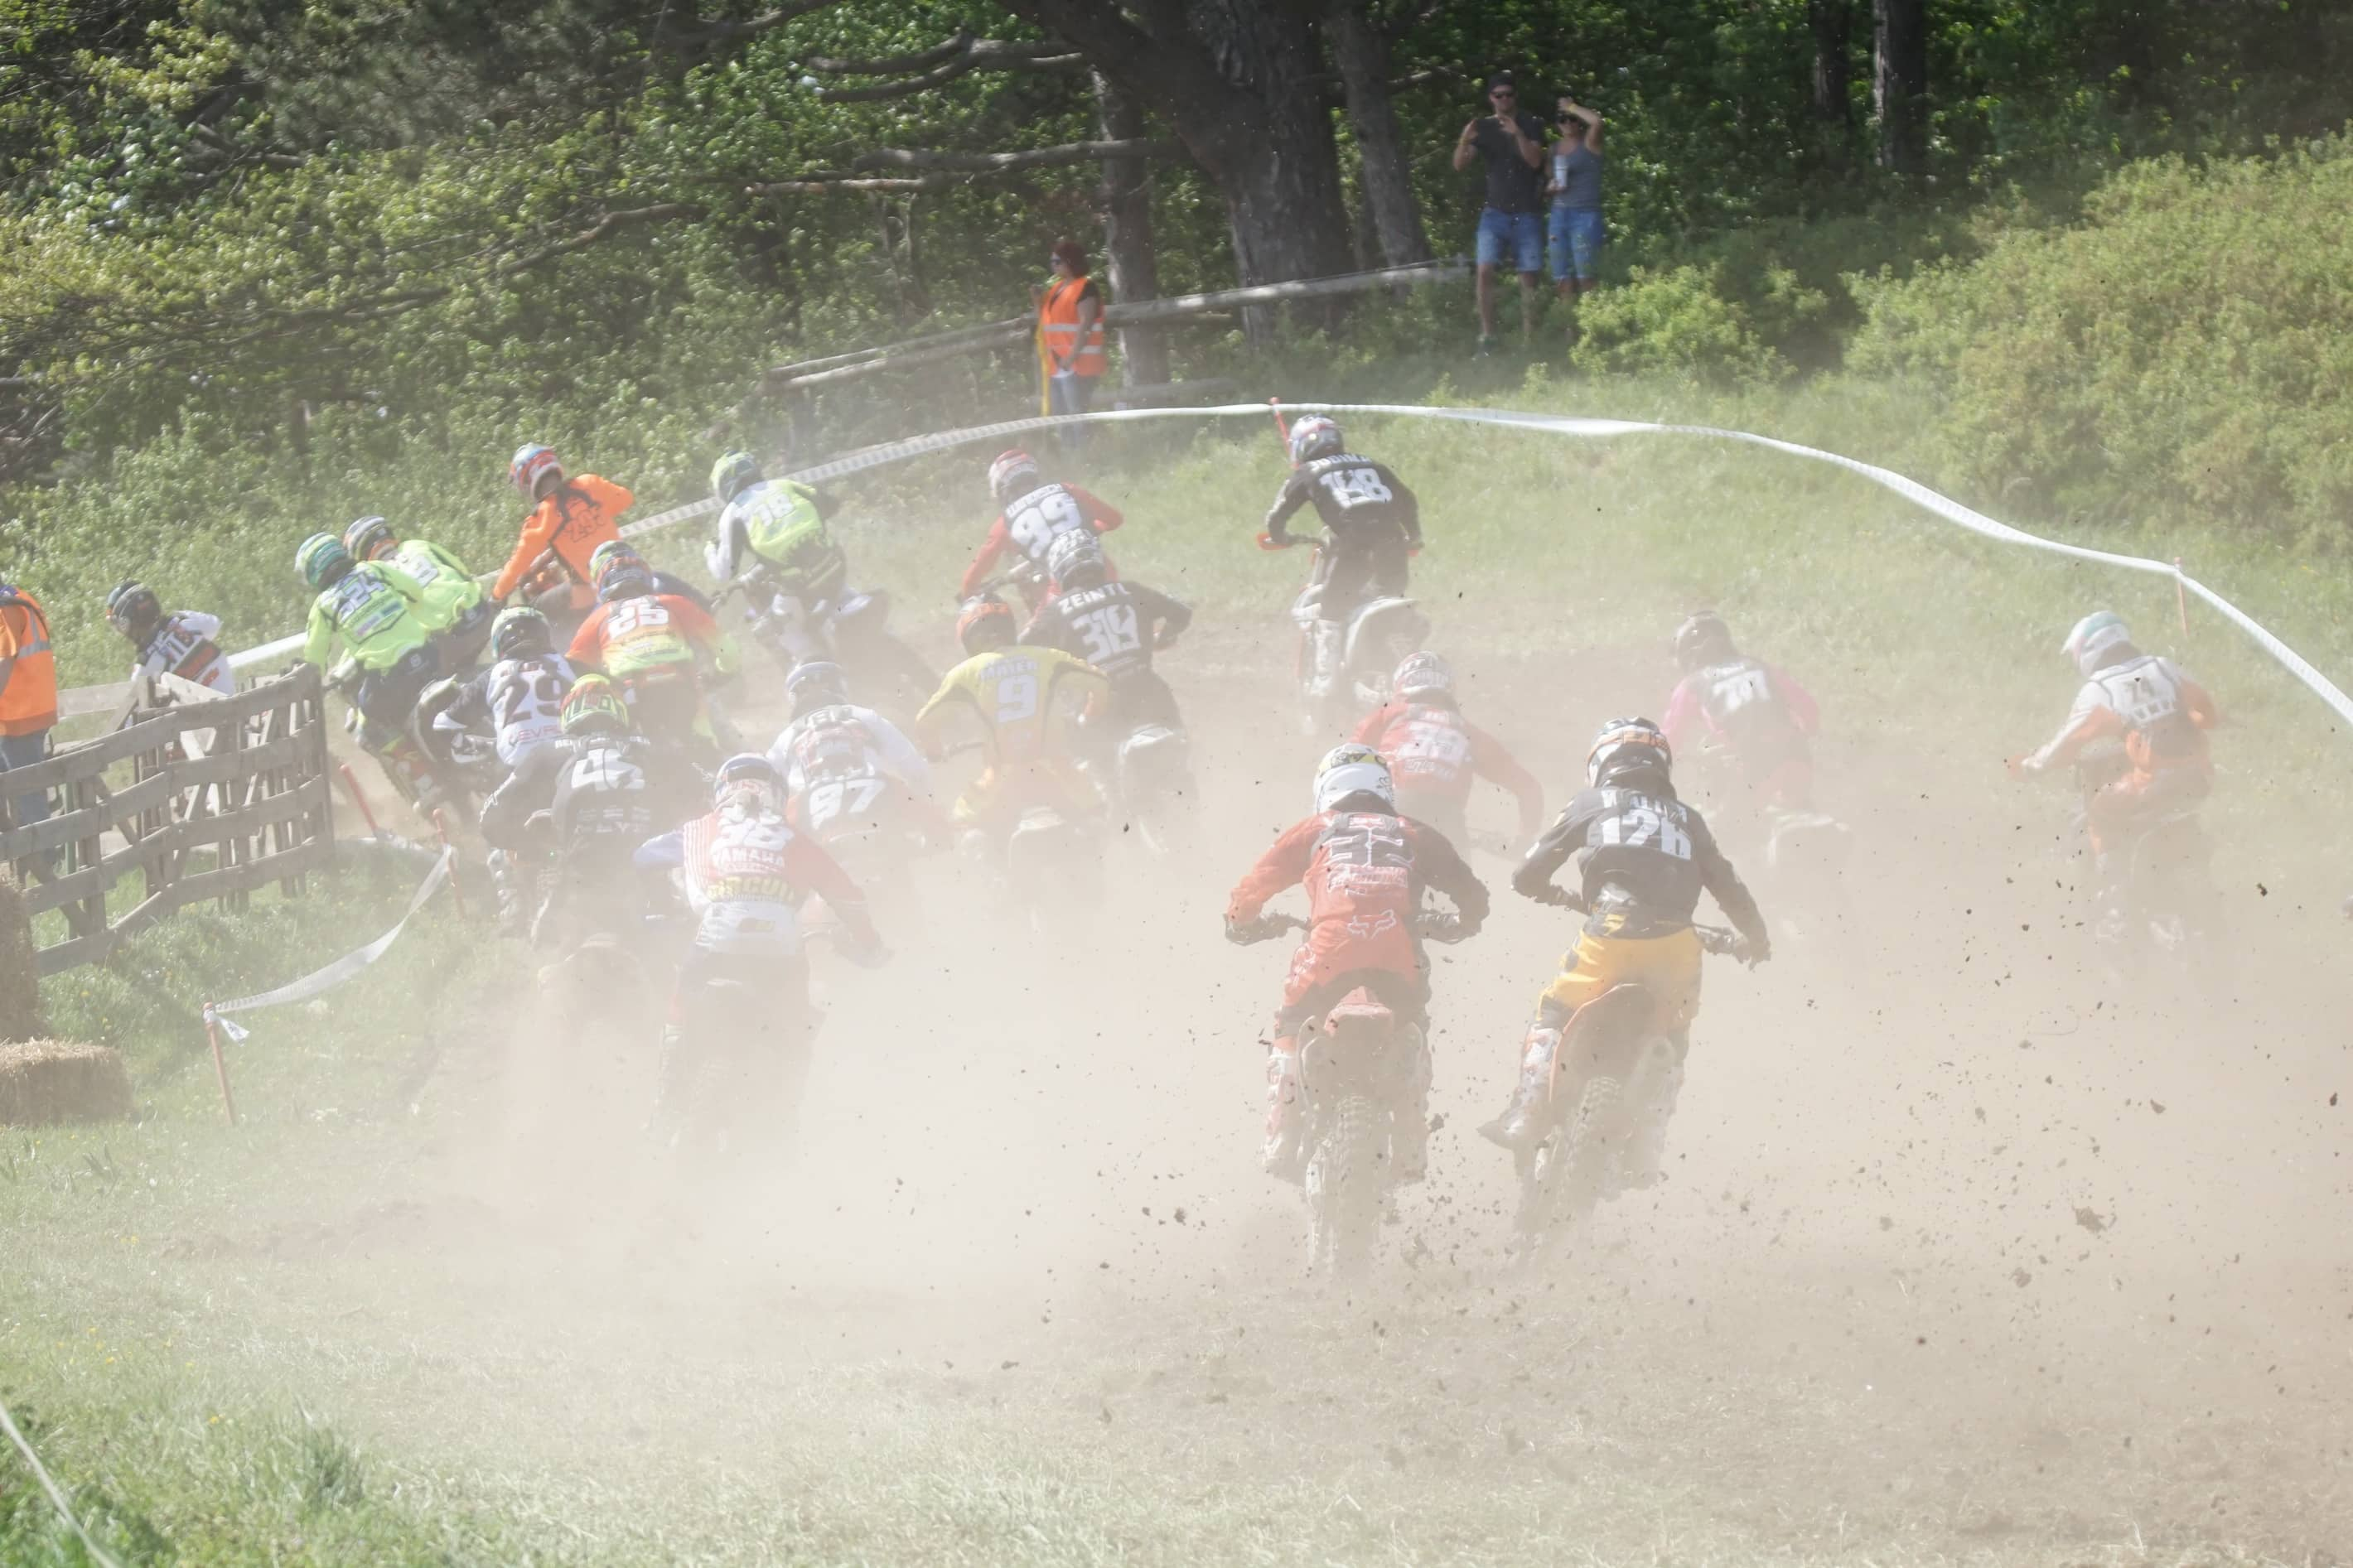 DSC 652_Moto Cross Sittendorf Teil1 am 29.04.2018